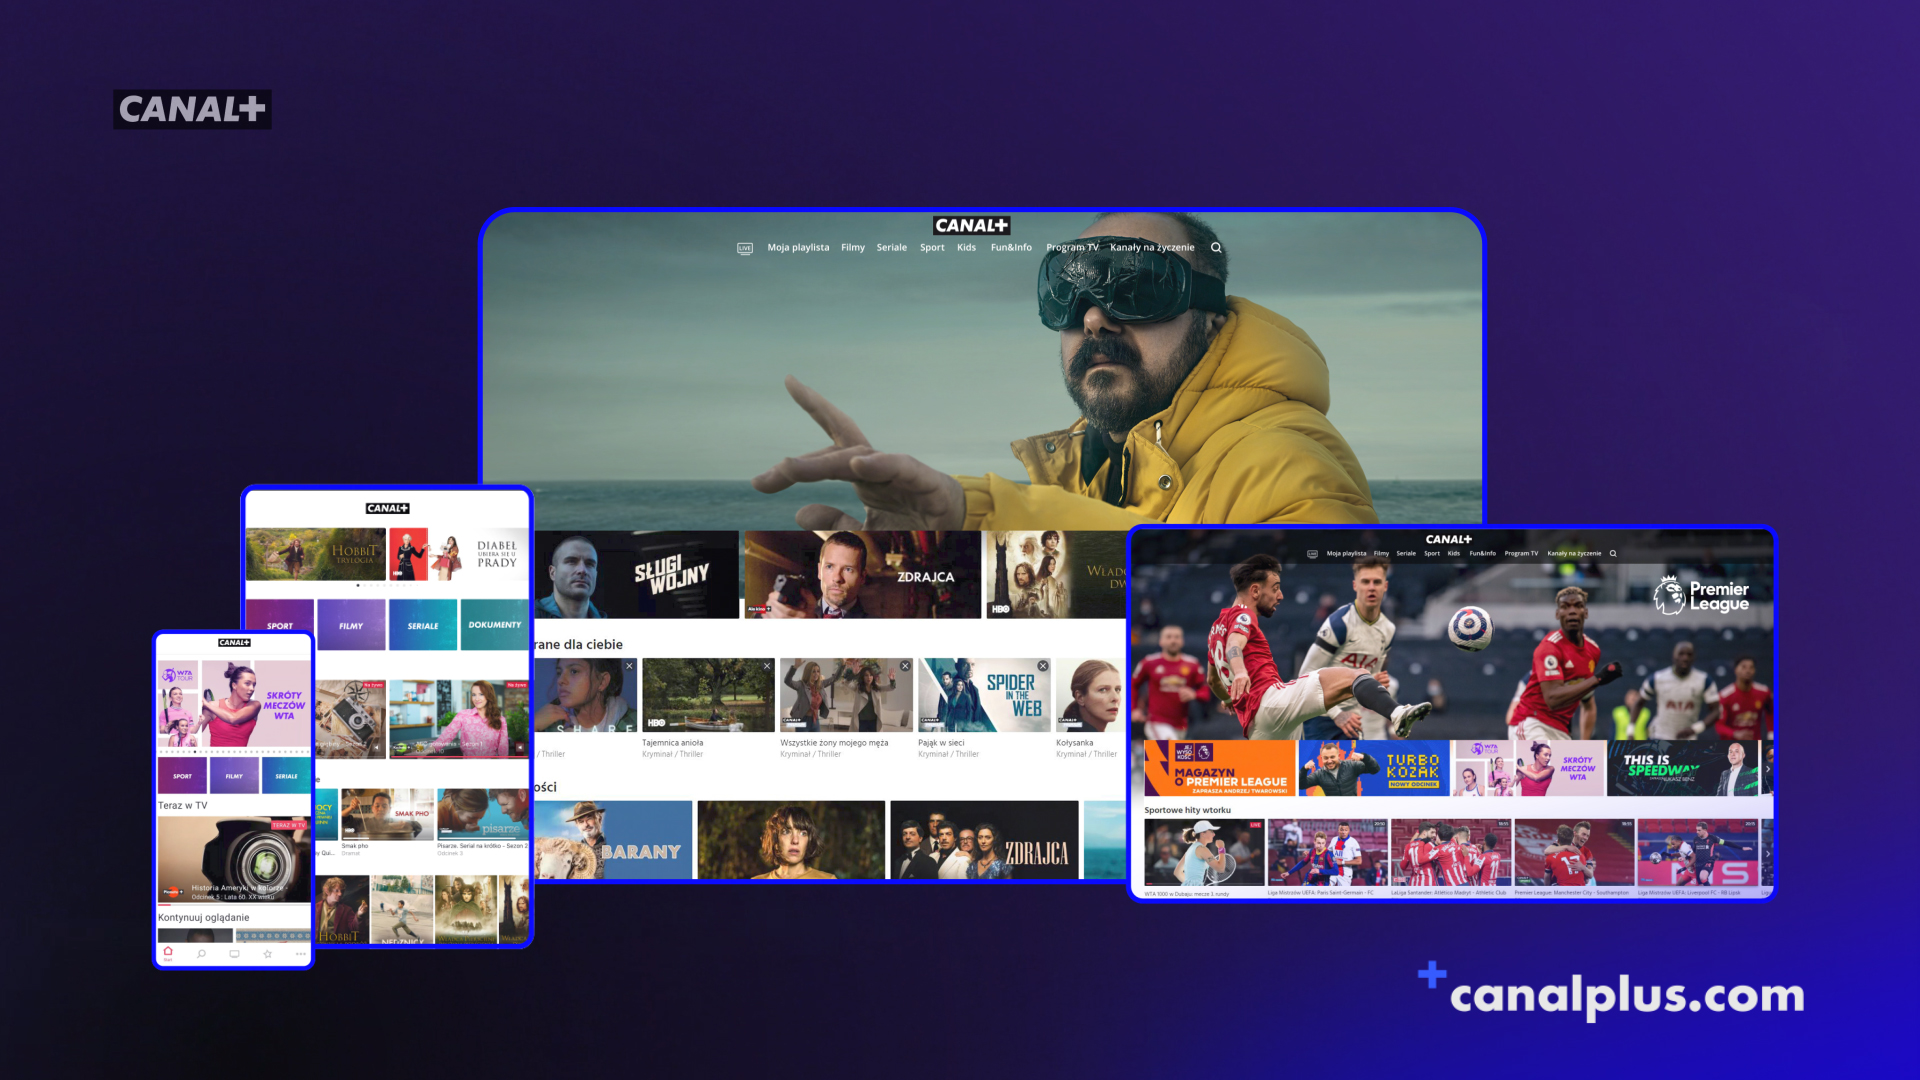 CANAL+ online